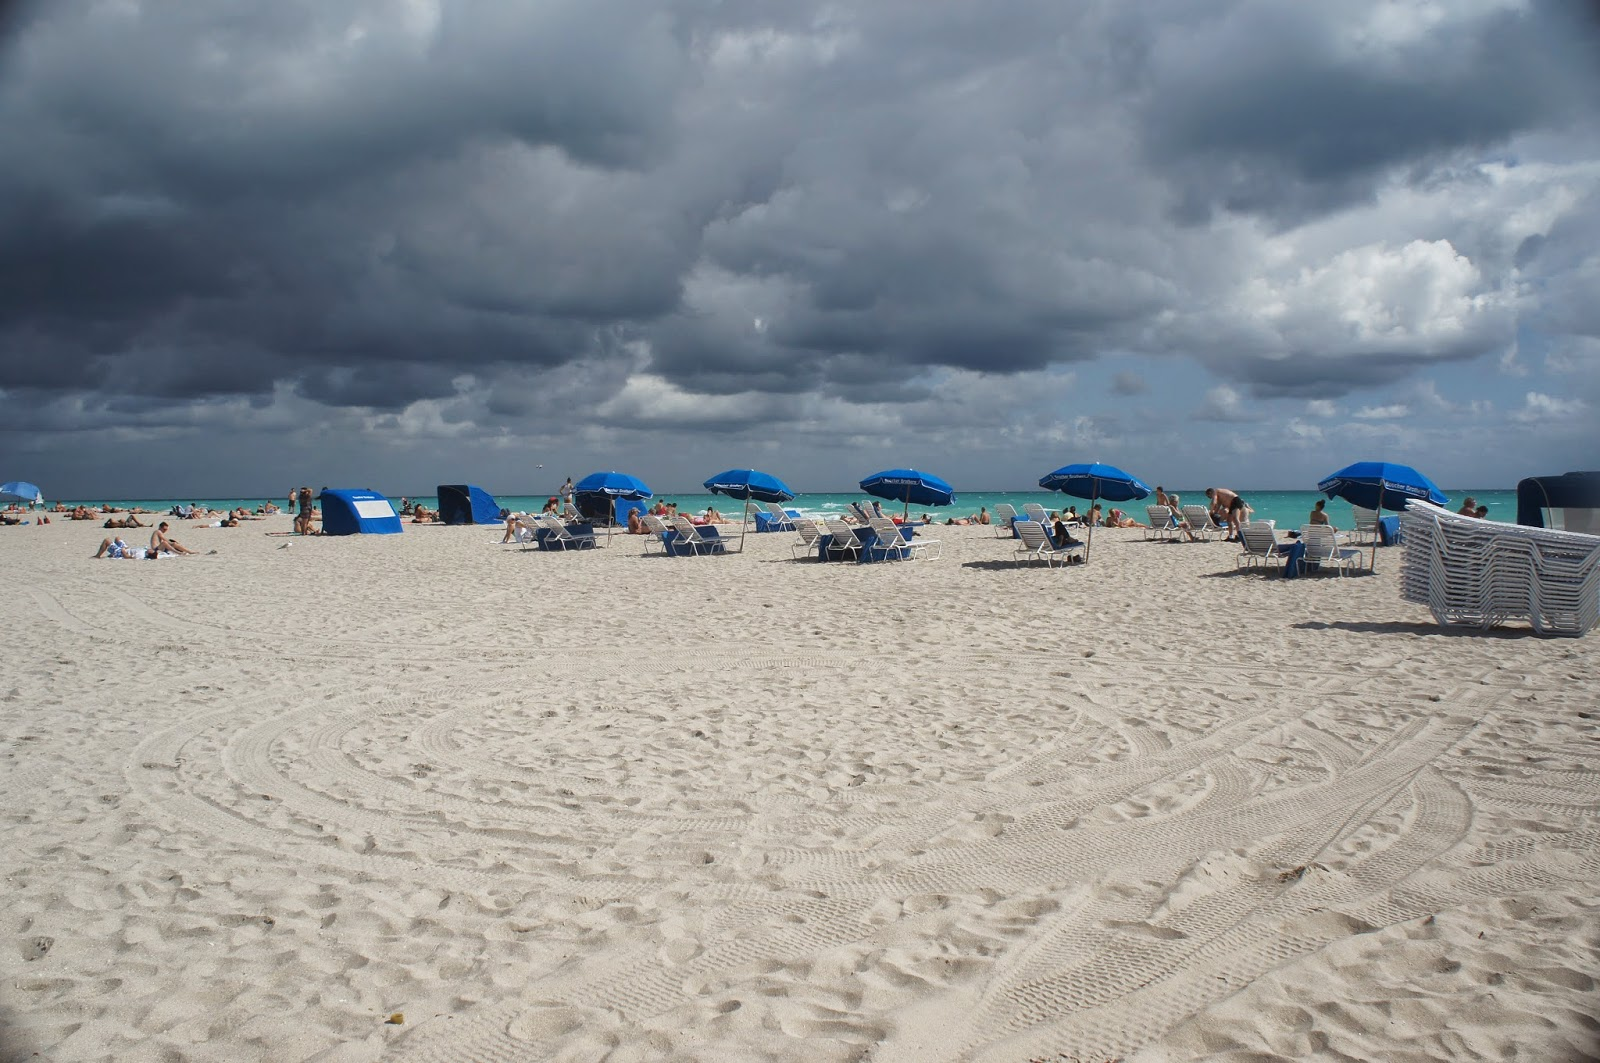 dark clouds above the beach with umbrellas